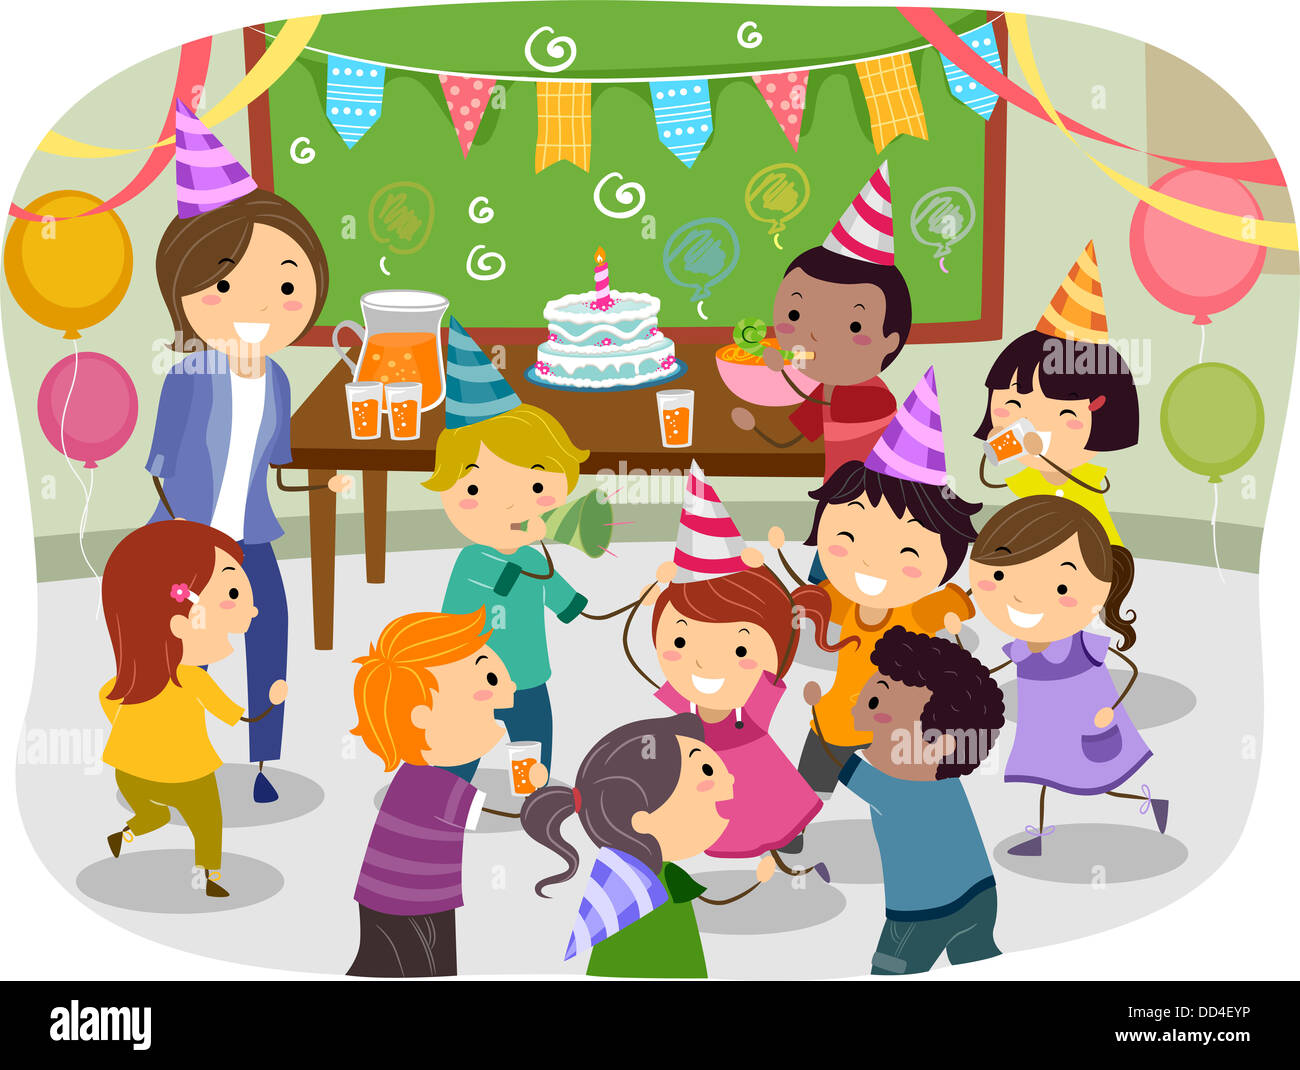 illustration-of-stickman-kids-having-a-birthday-party-at-school-DD4EYP.jpg